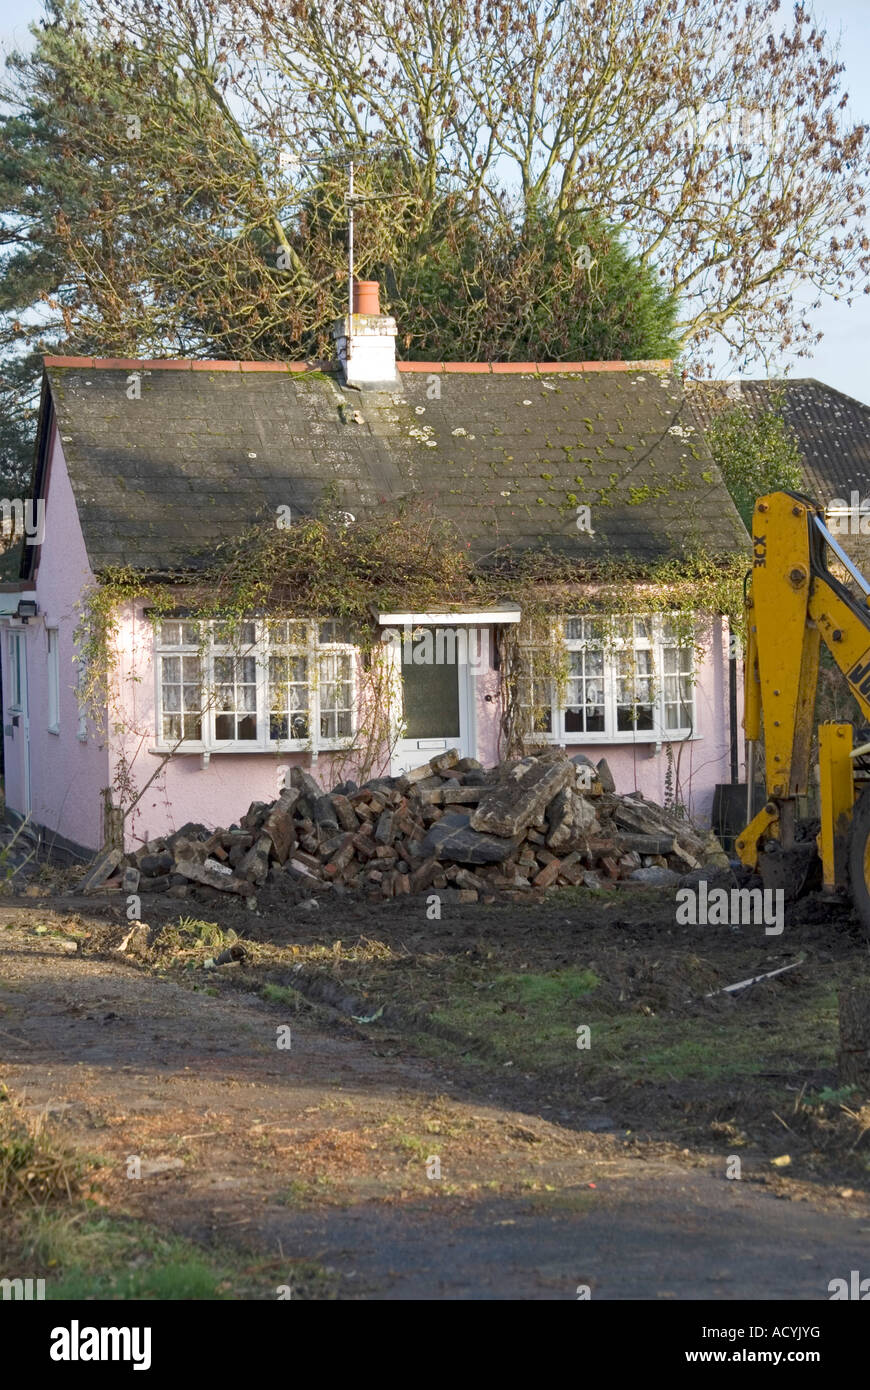 Redundant old between the war holiday village cottage sitting on valuable building plot about to be demolished for - Stock Image